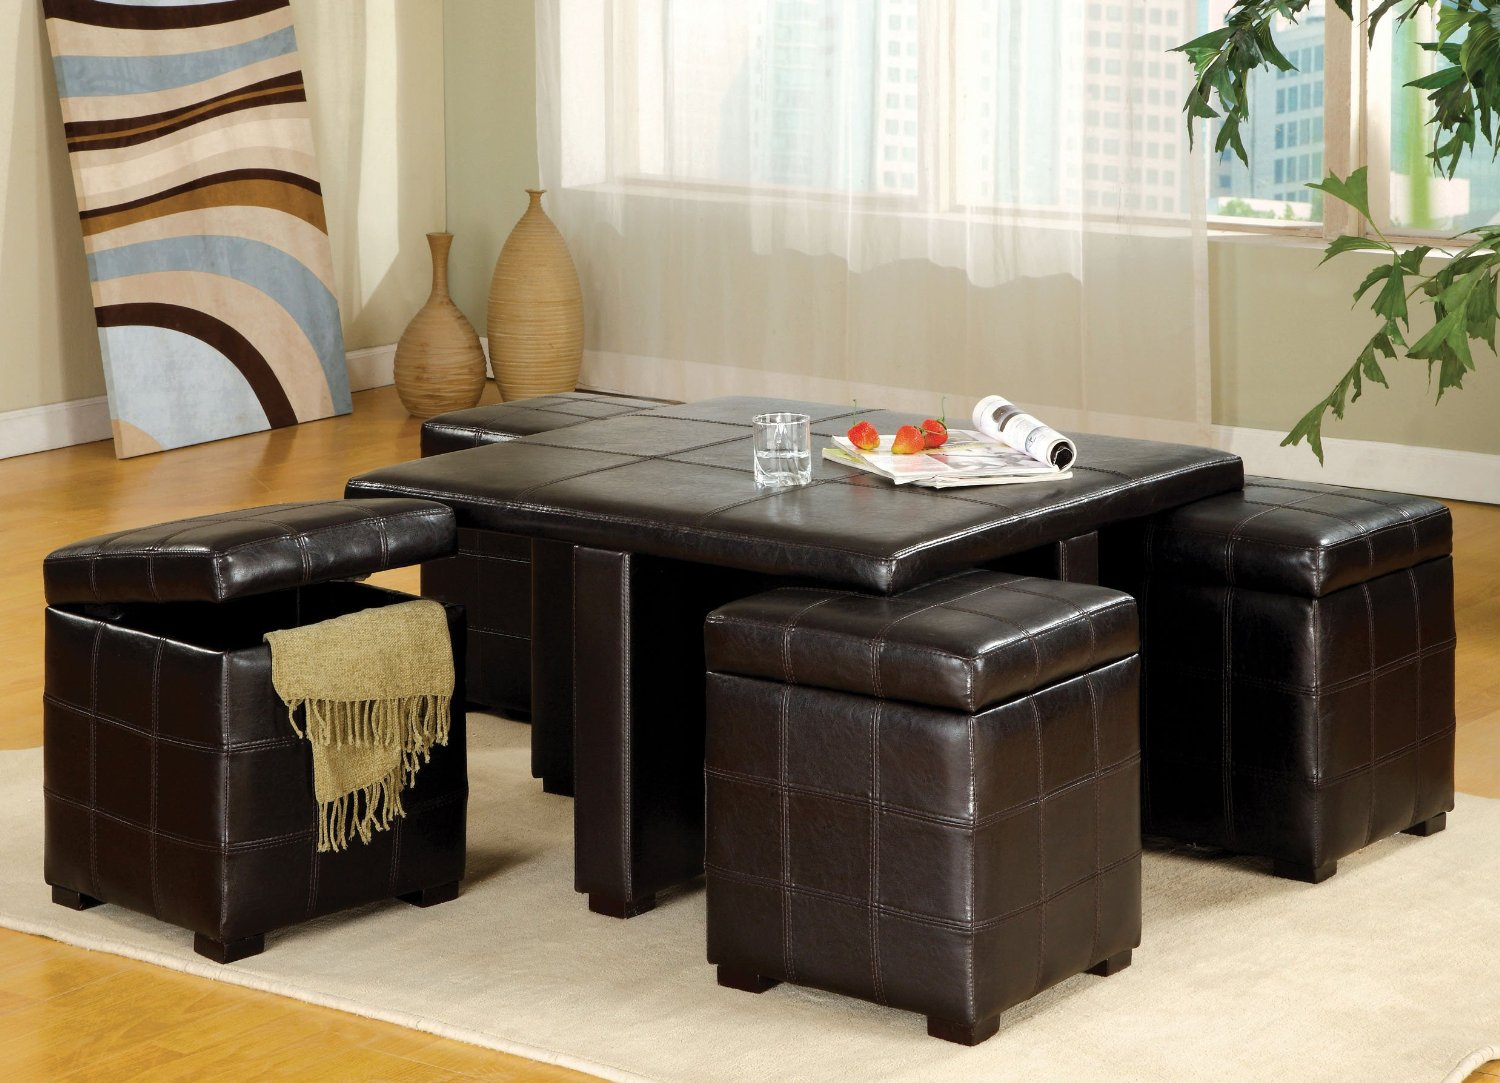 Soft Coffee Table With Storage Get A Compact And Multi Functional Living Room Space By